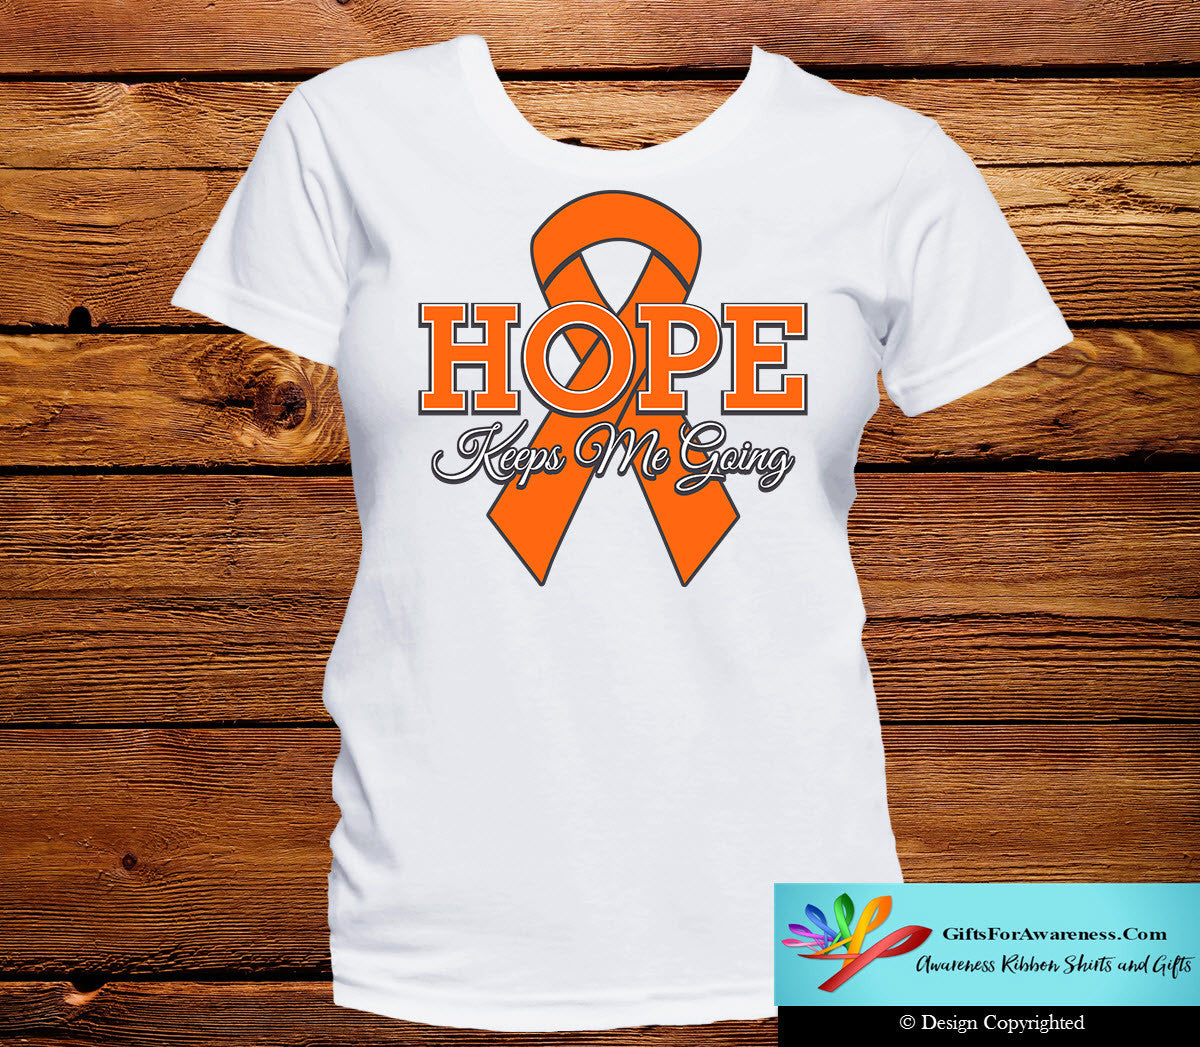 Kidney Cancer Hope Keeps Me Going Shirts - GiftsForAwareness